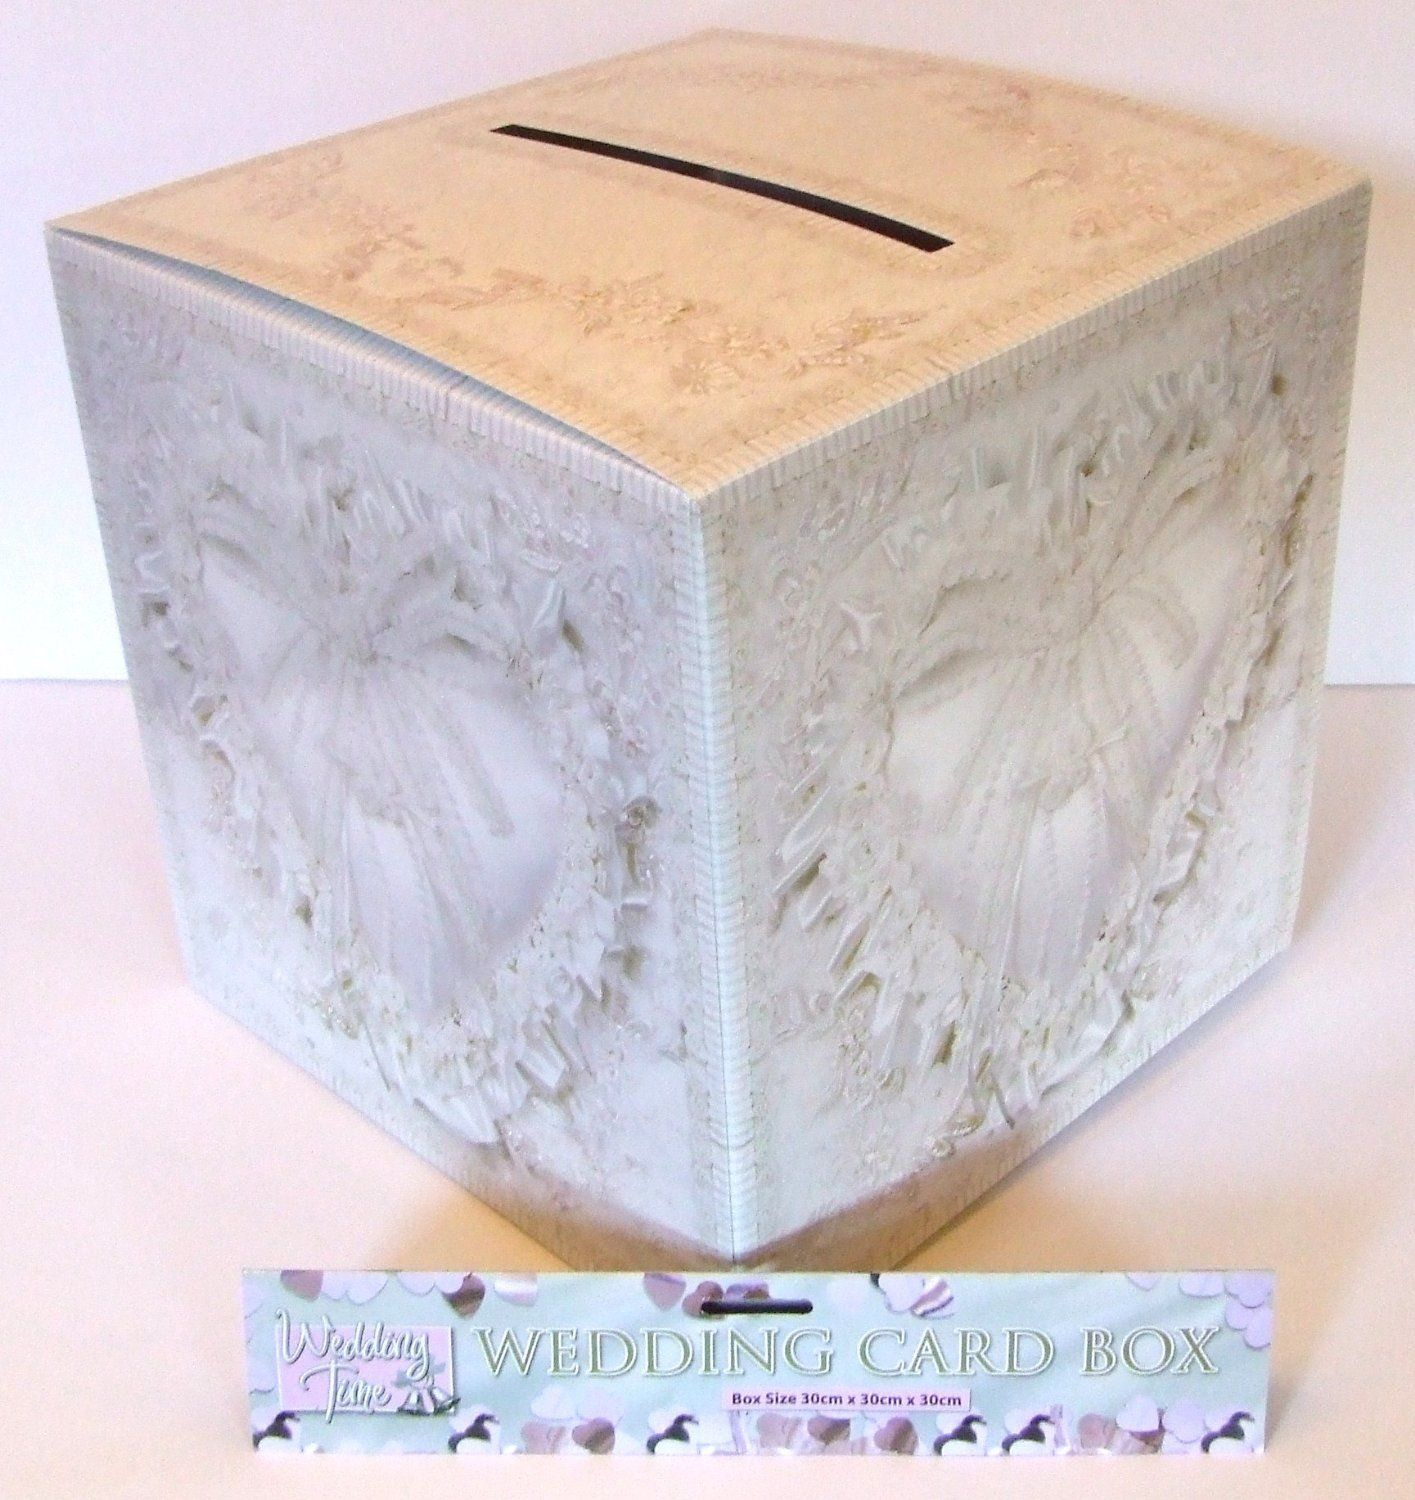 Wedding Gift Post Boxes Uk : Wedding Card Post Box, Wedding Favours, Wedding Gifts, Wishing Well ...